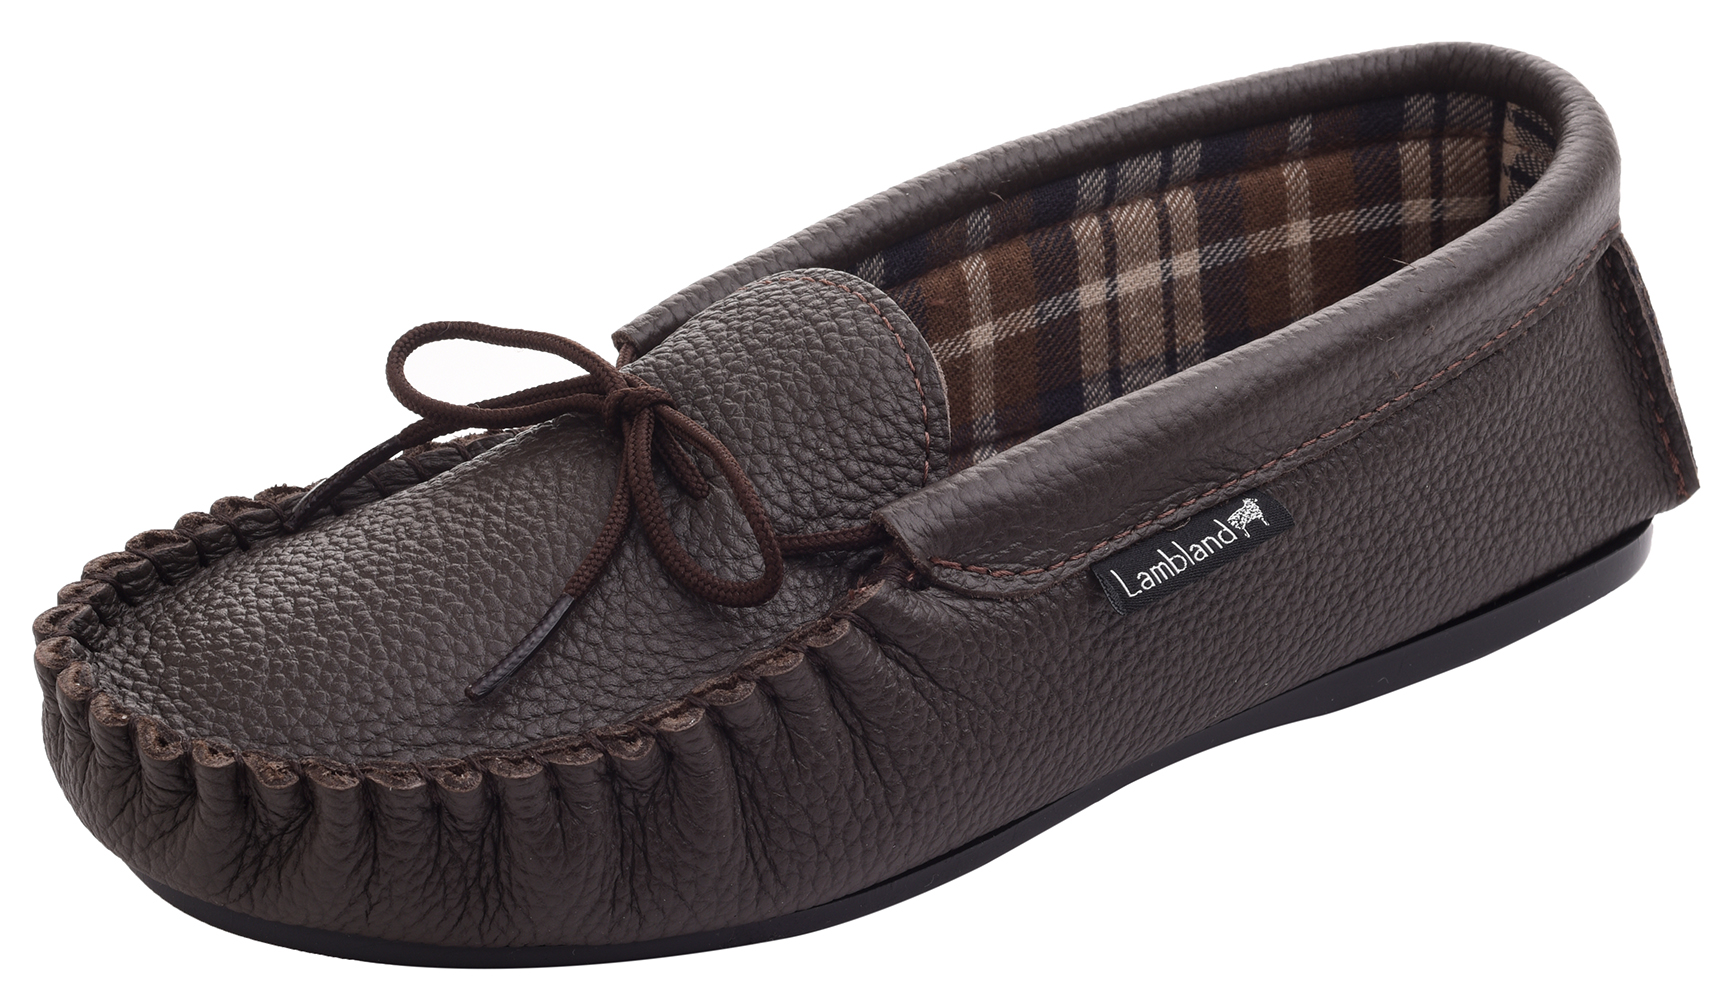 Leather-Moccasin-Slippers-UK-Made-for-Men-and-Ladies-Cotton-Lining-by-Lambland thumbnail 11